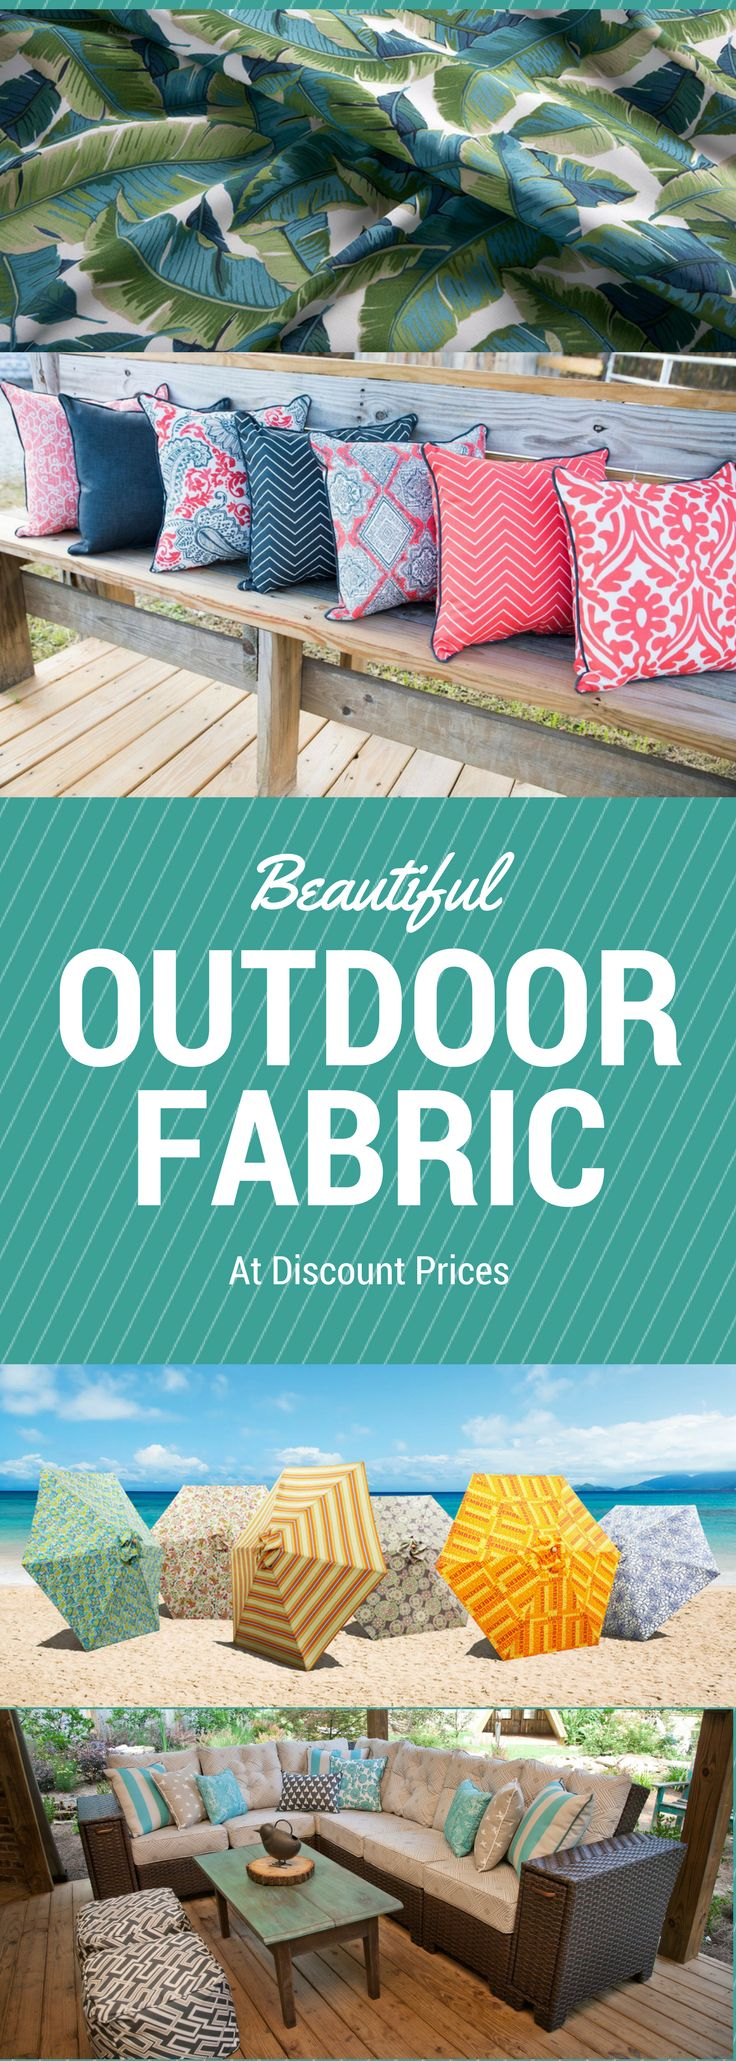 Discount outdoor fabric by the yard - Fabricguru Com Carries Over 6 000 Discount Outdoor Fabrics From All Your Favorite Designers Sunbrella